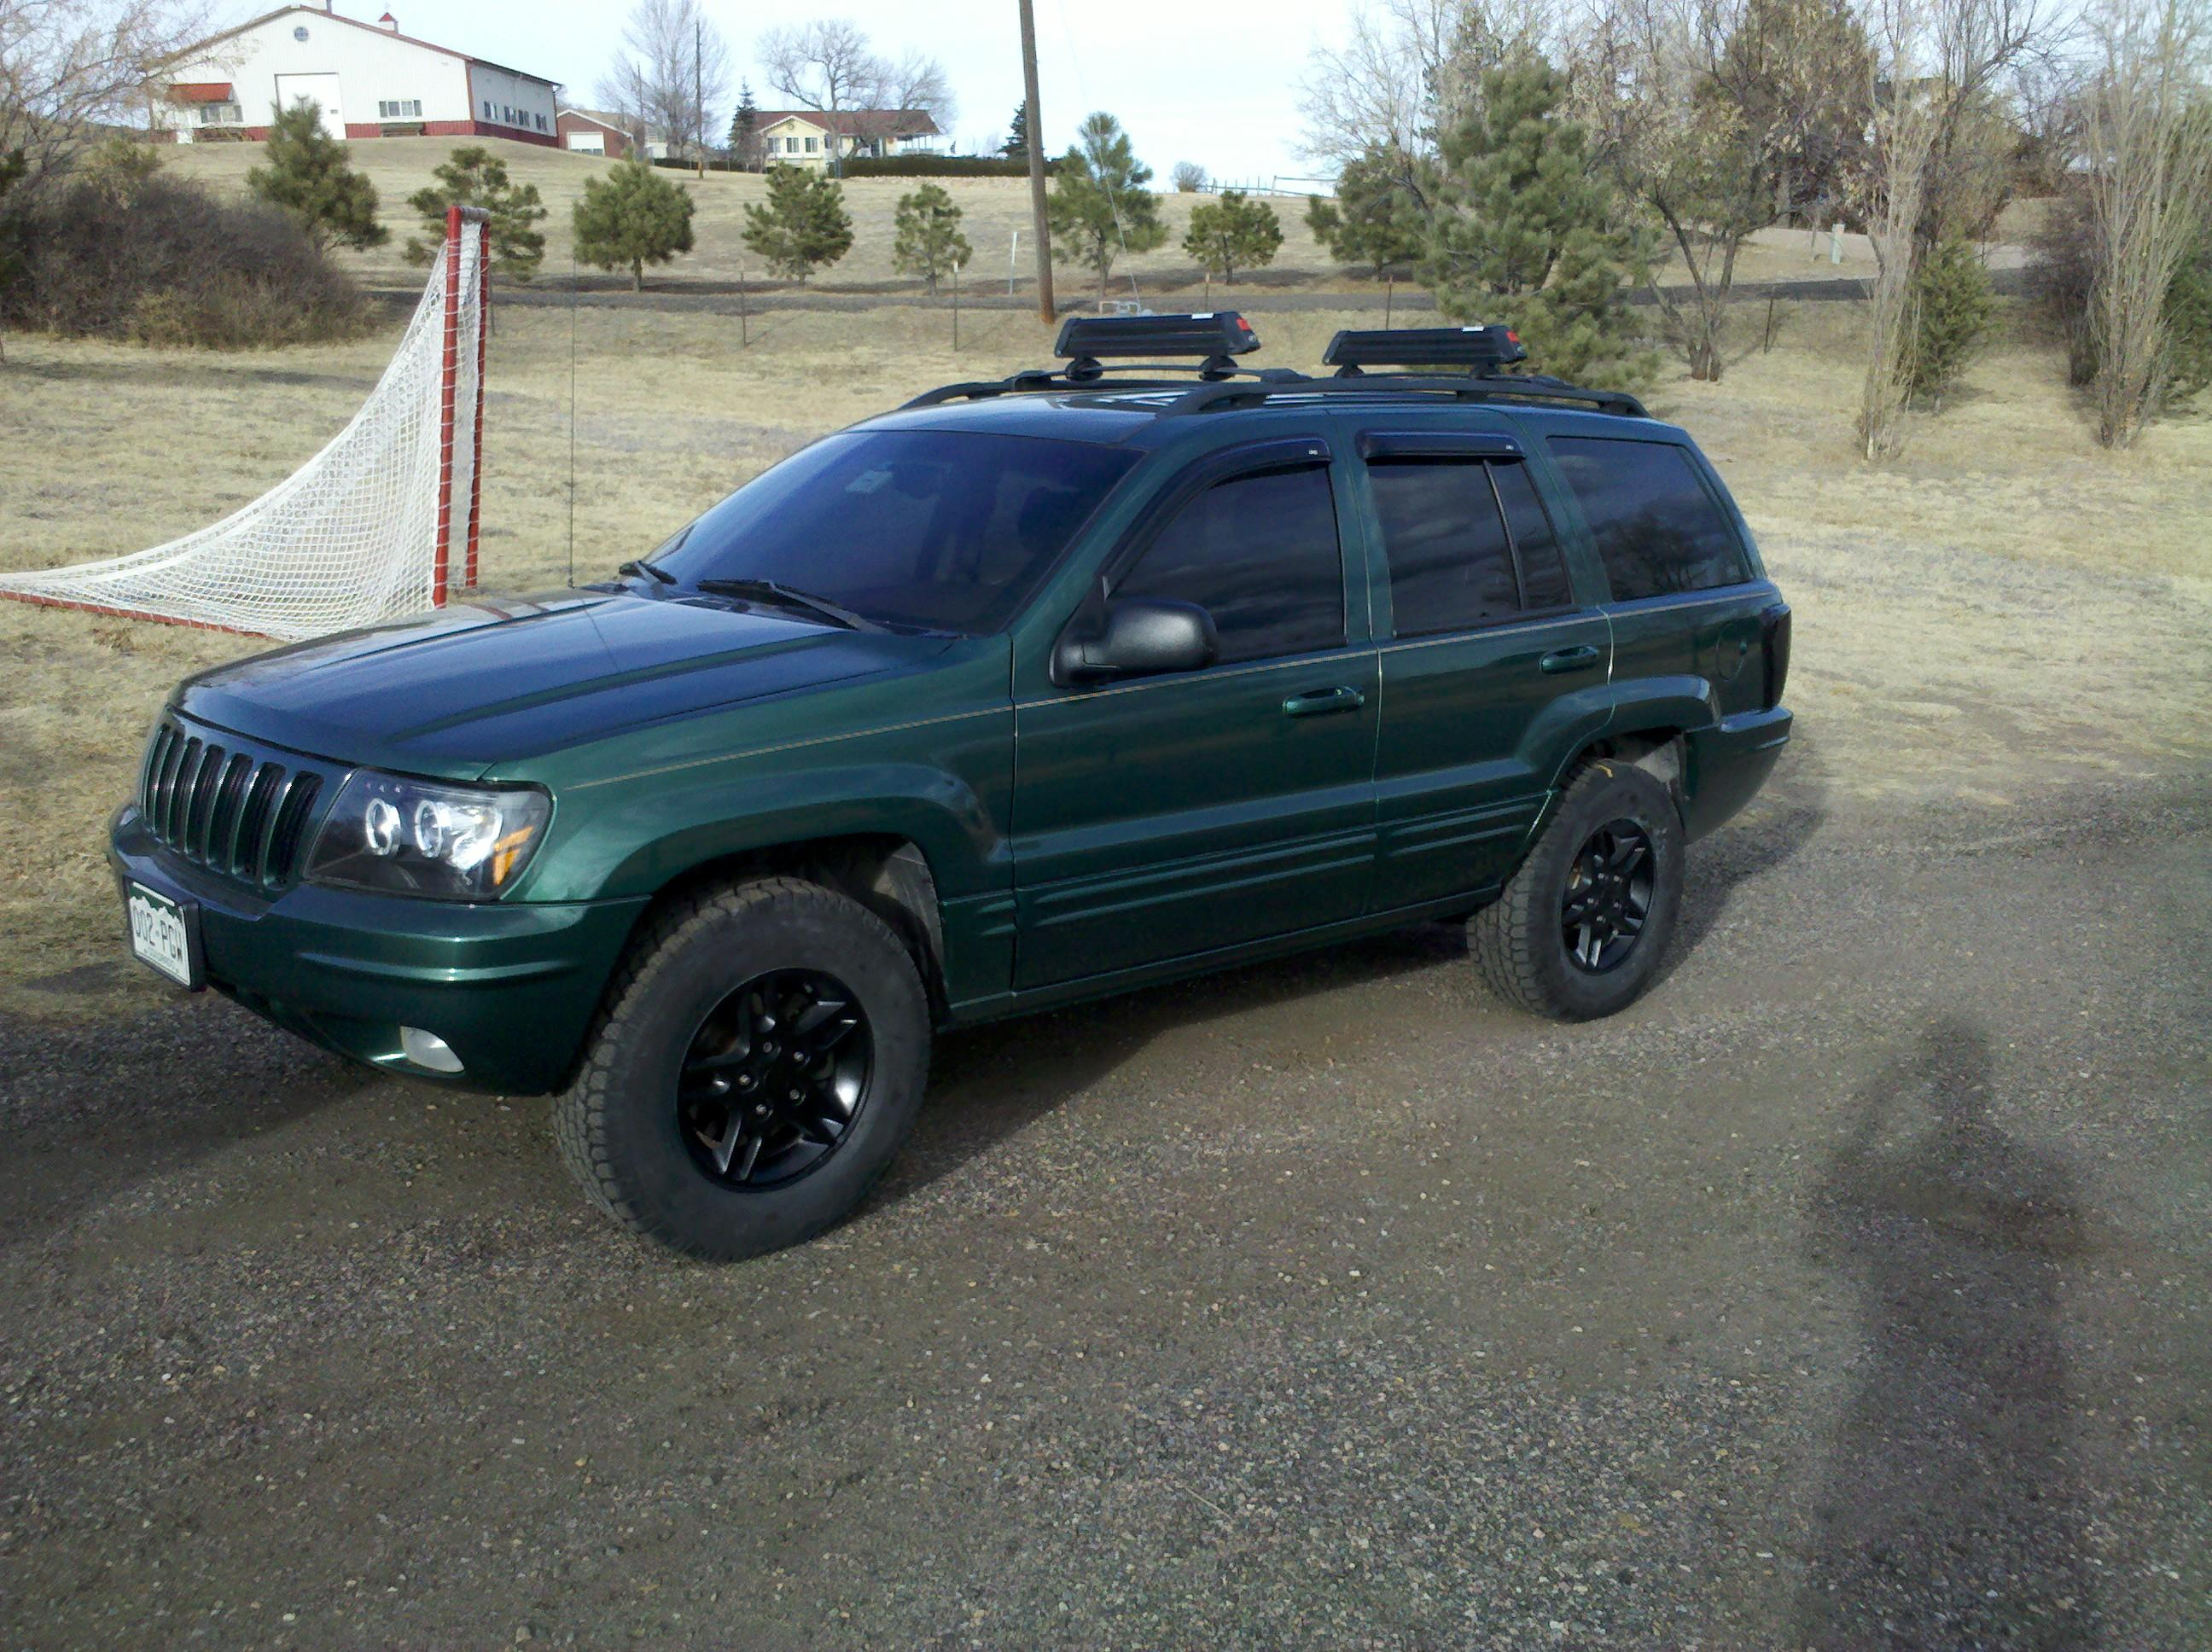 Ford Fusion Wheels >> GCjeep99 1999 Jeep Grand CherokeeLimited Sport Utility 4D Specs, Photos, Modification Info at ...